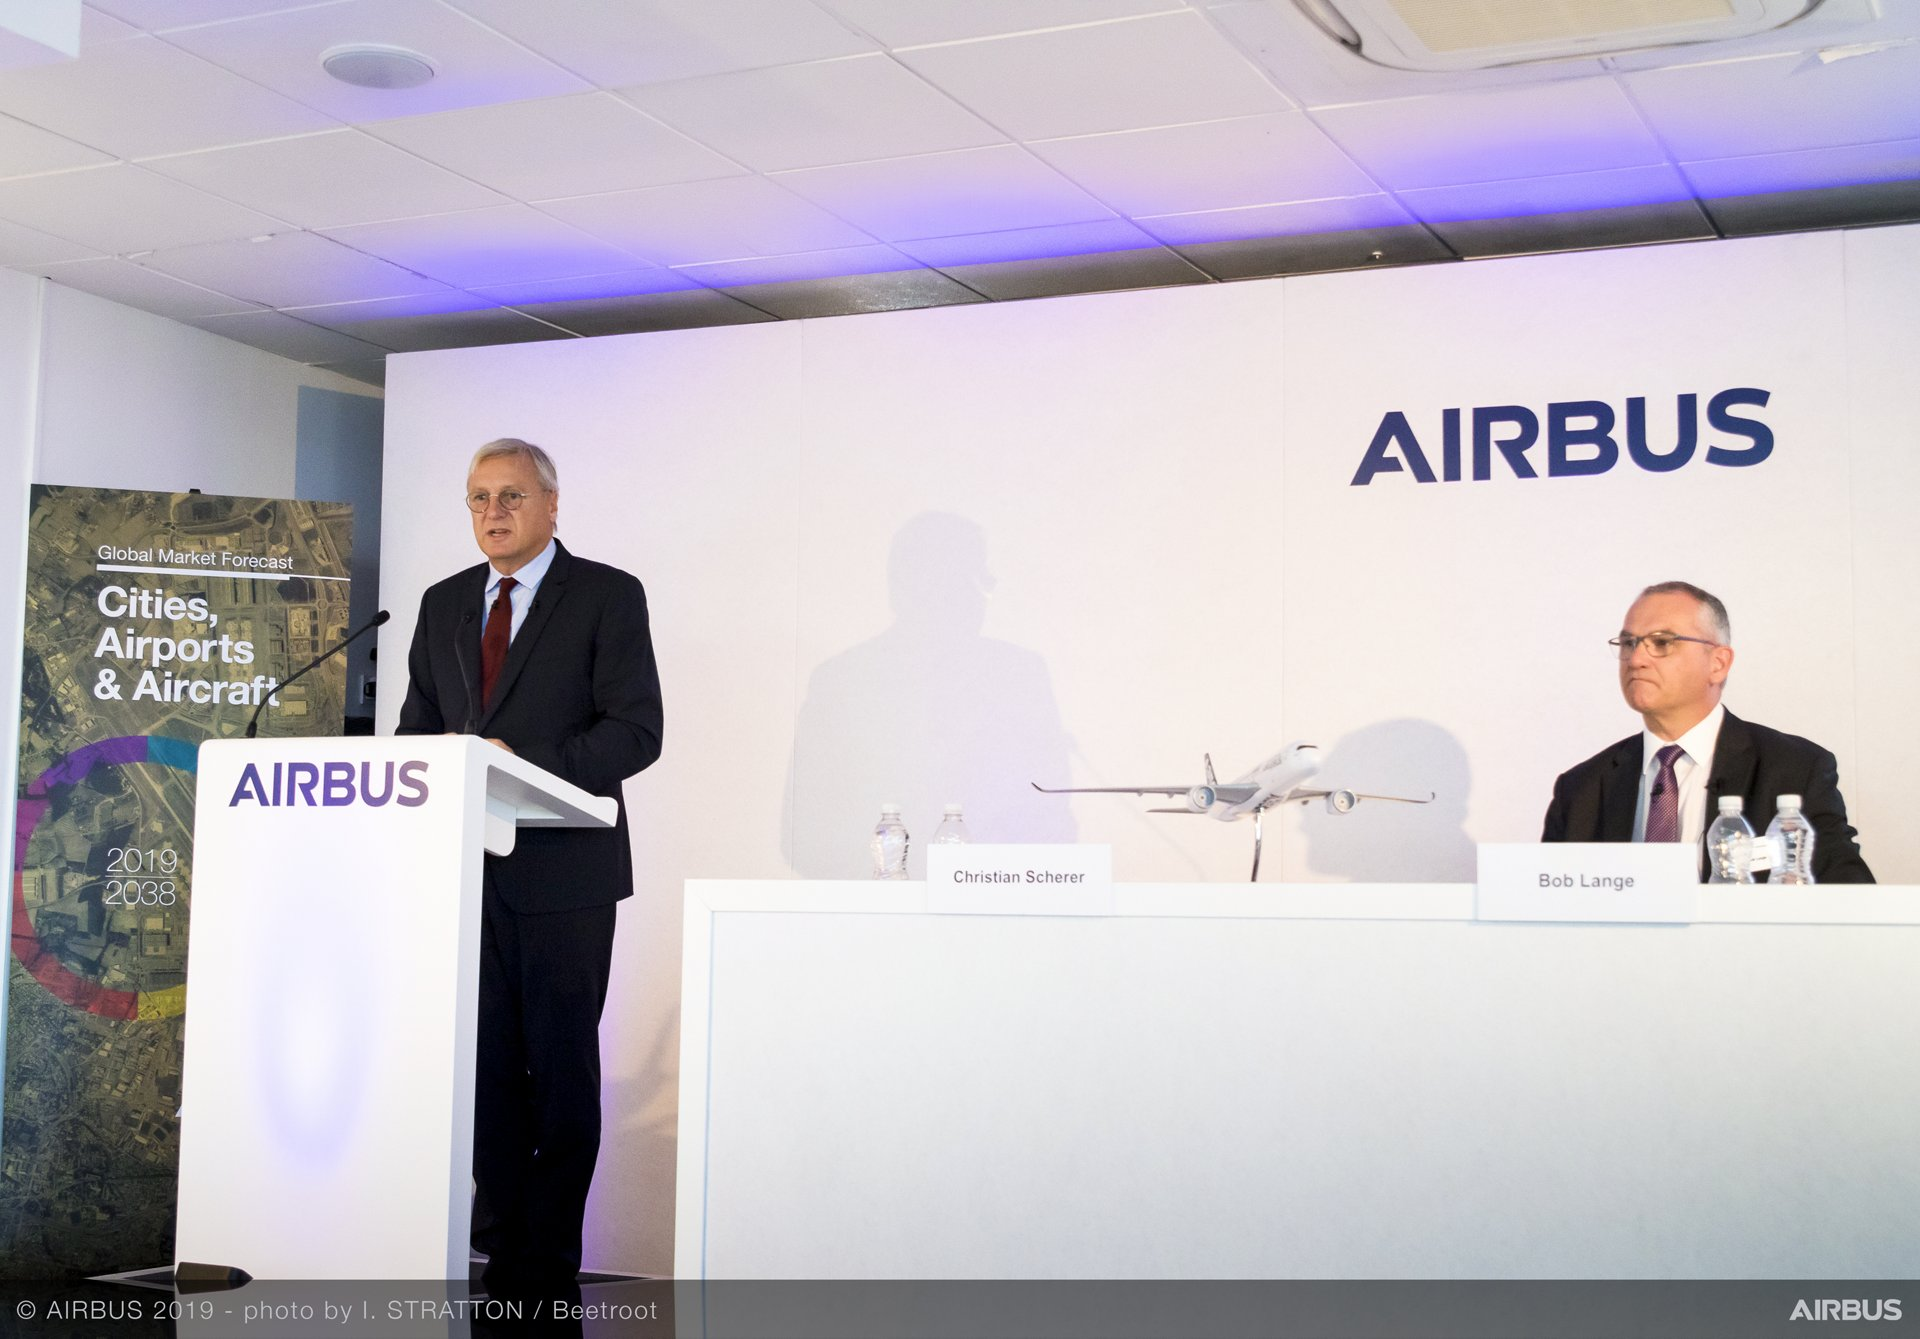 Airbus forecasts need for over 39,000 new aircraft in next 20 years